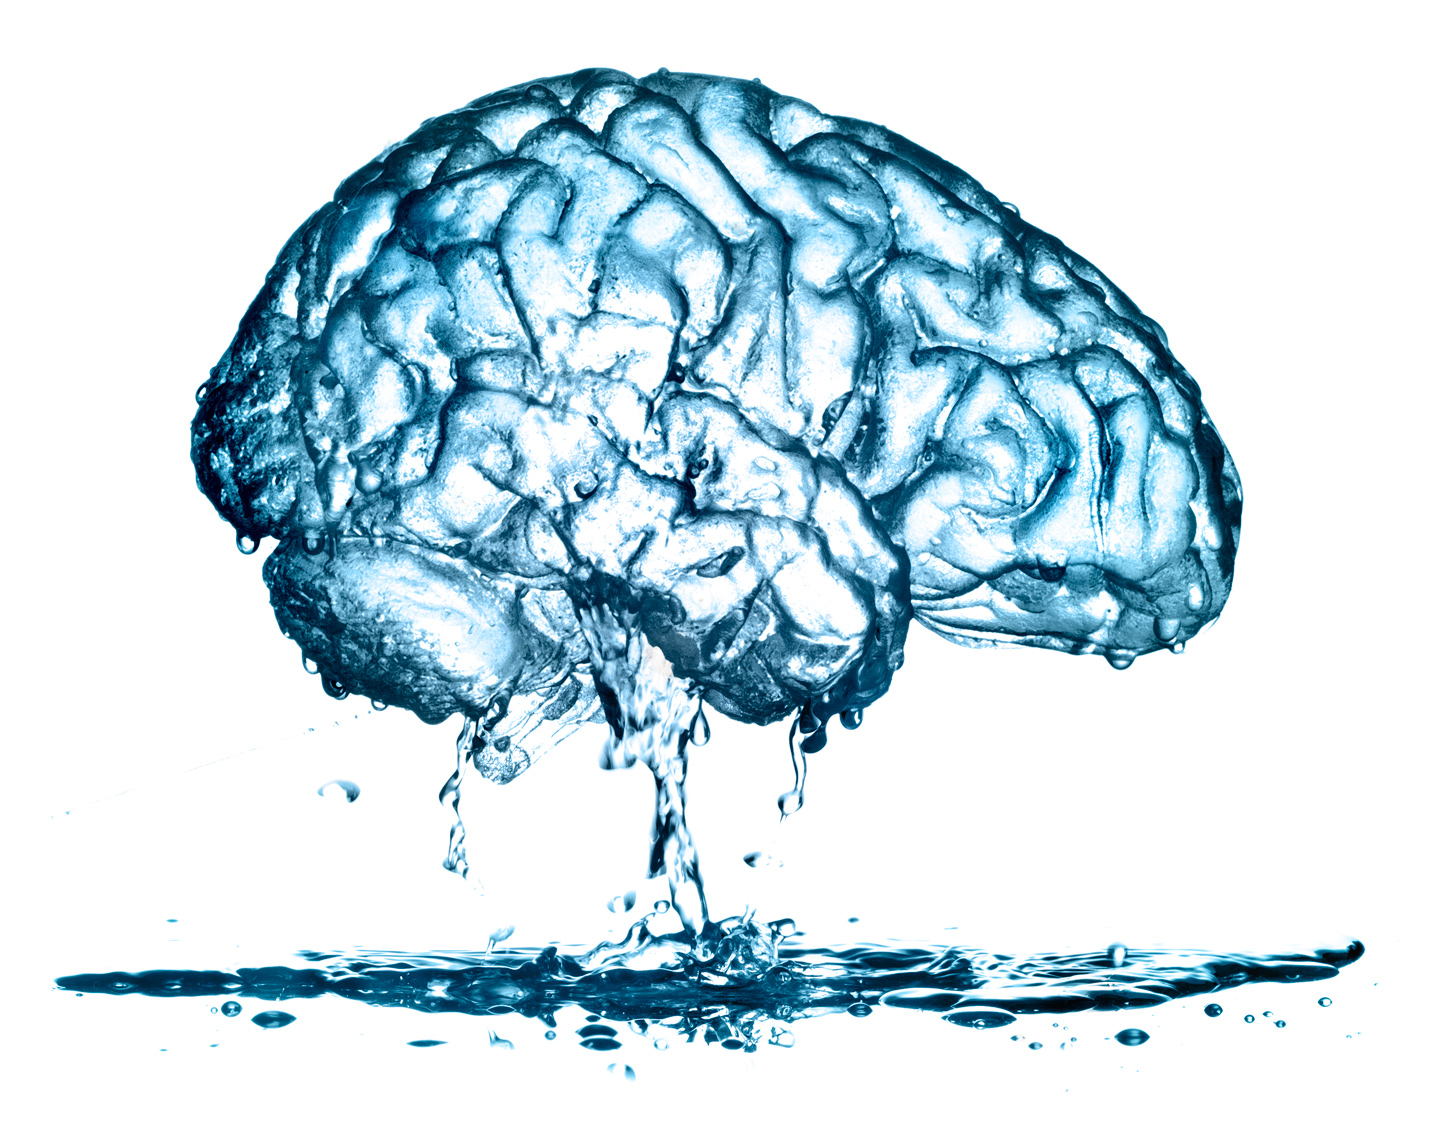 Water brain hydration dripping photo-Illustration by John Kuczala